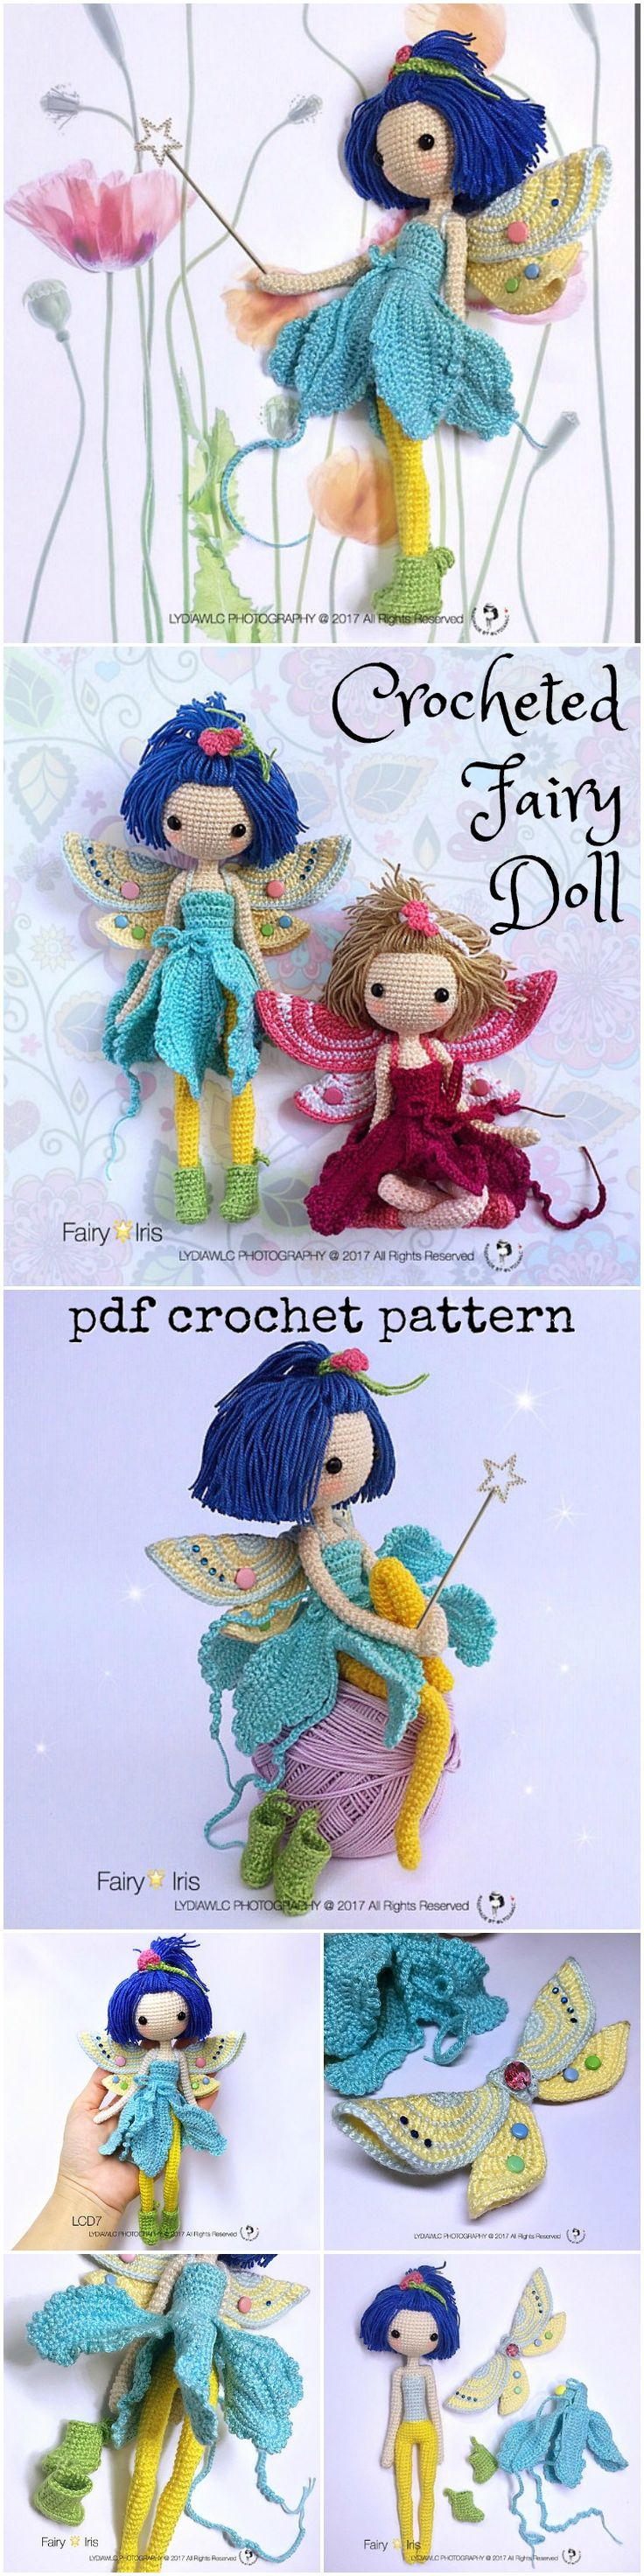 Oh! this crochet doll pattern is ADORABLE! Such intricate detail!!! Wow this looks like an amazing amigurumi toy to make! Gorgeous! #etsy #ad #pdf #pattern #crochet